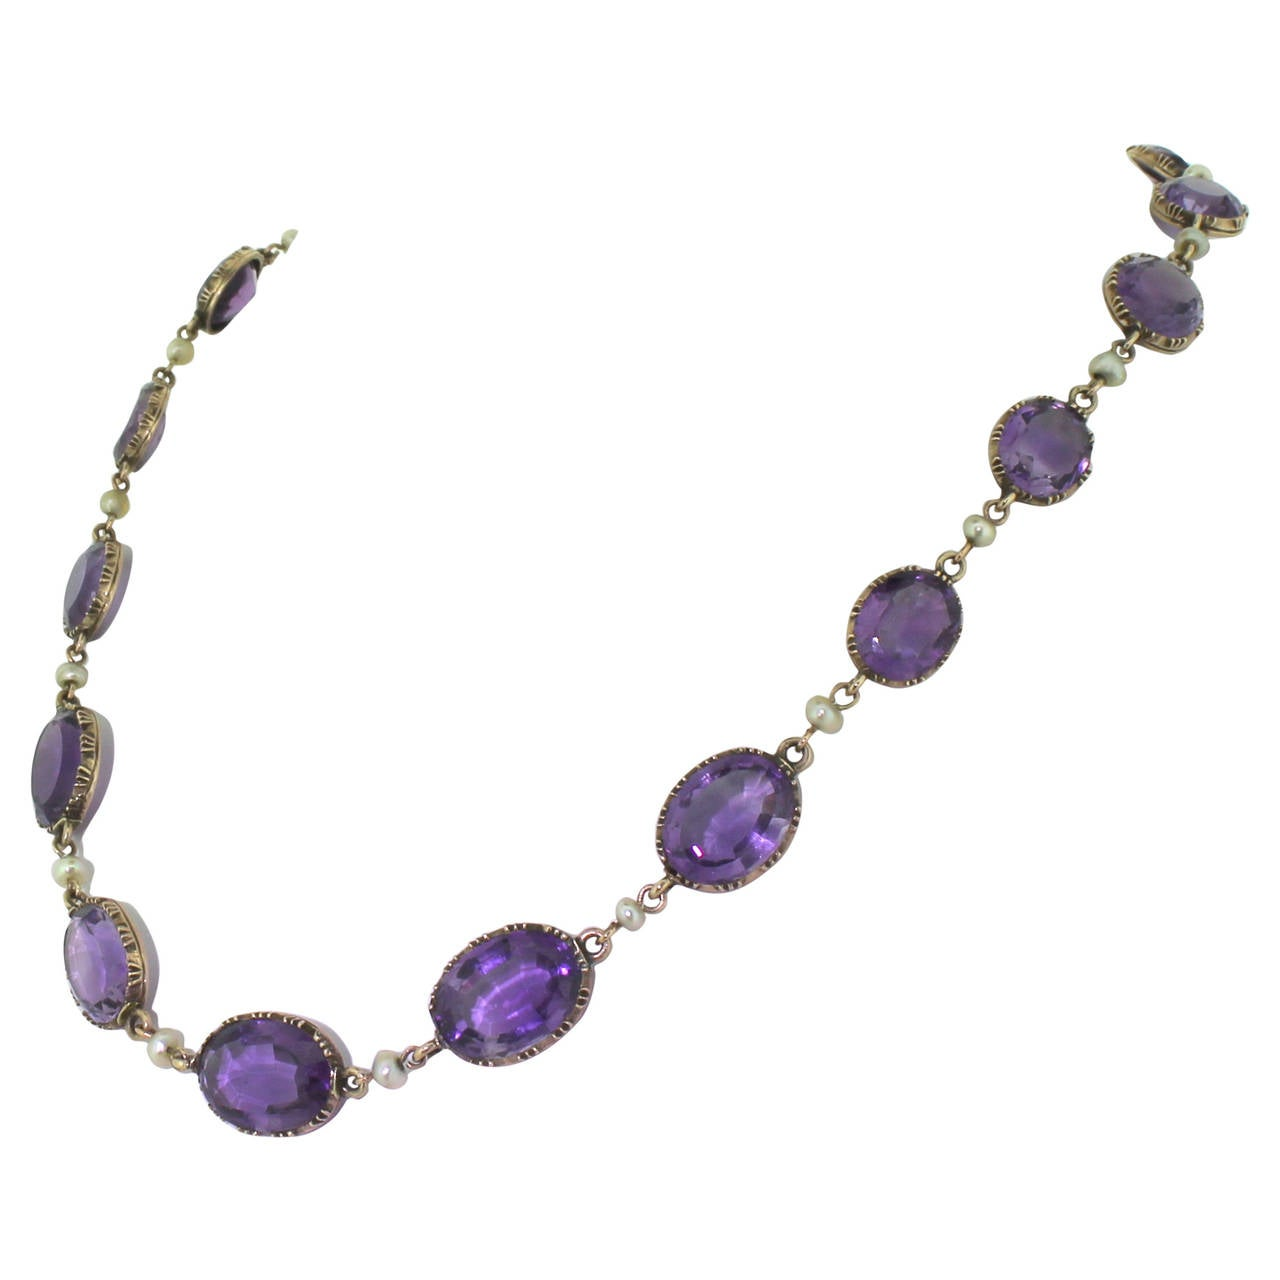 Victorian Amethyst And Pearl Riviere Necklace Circa 1880